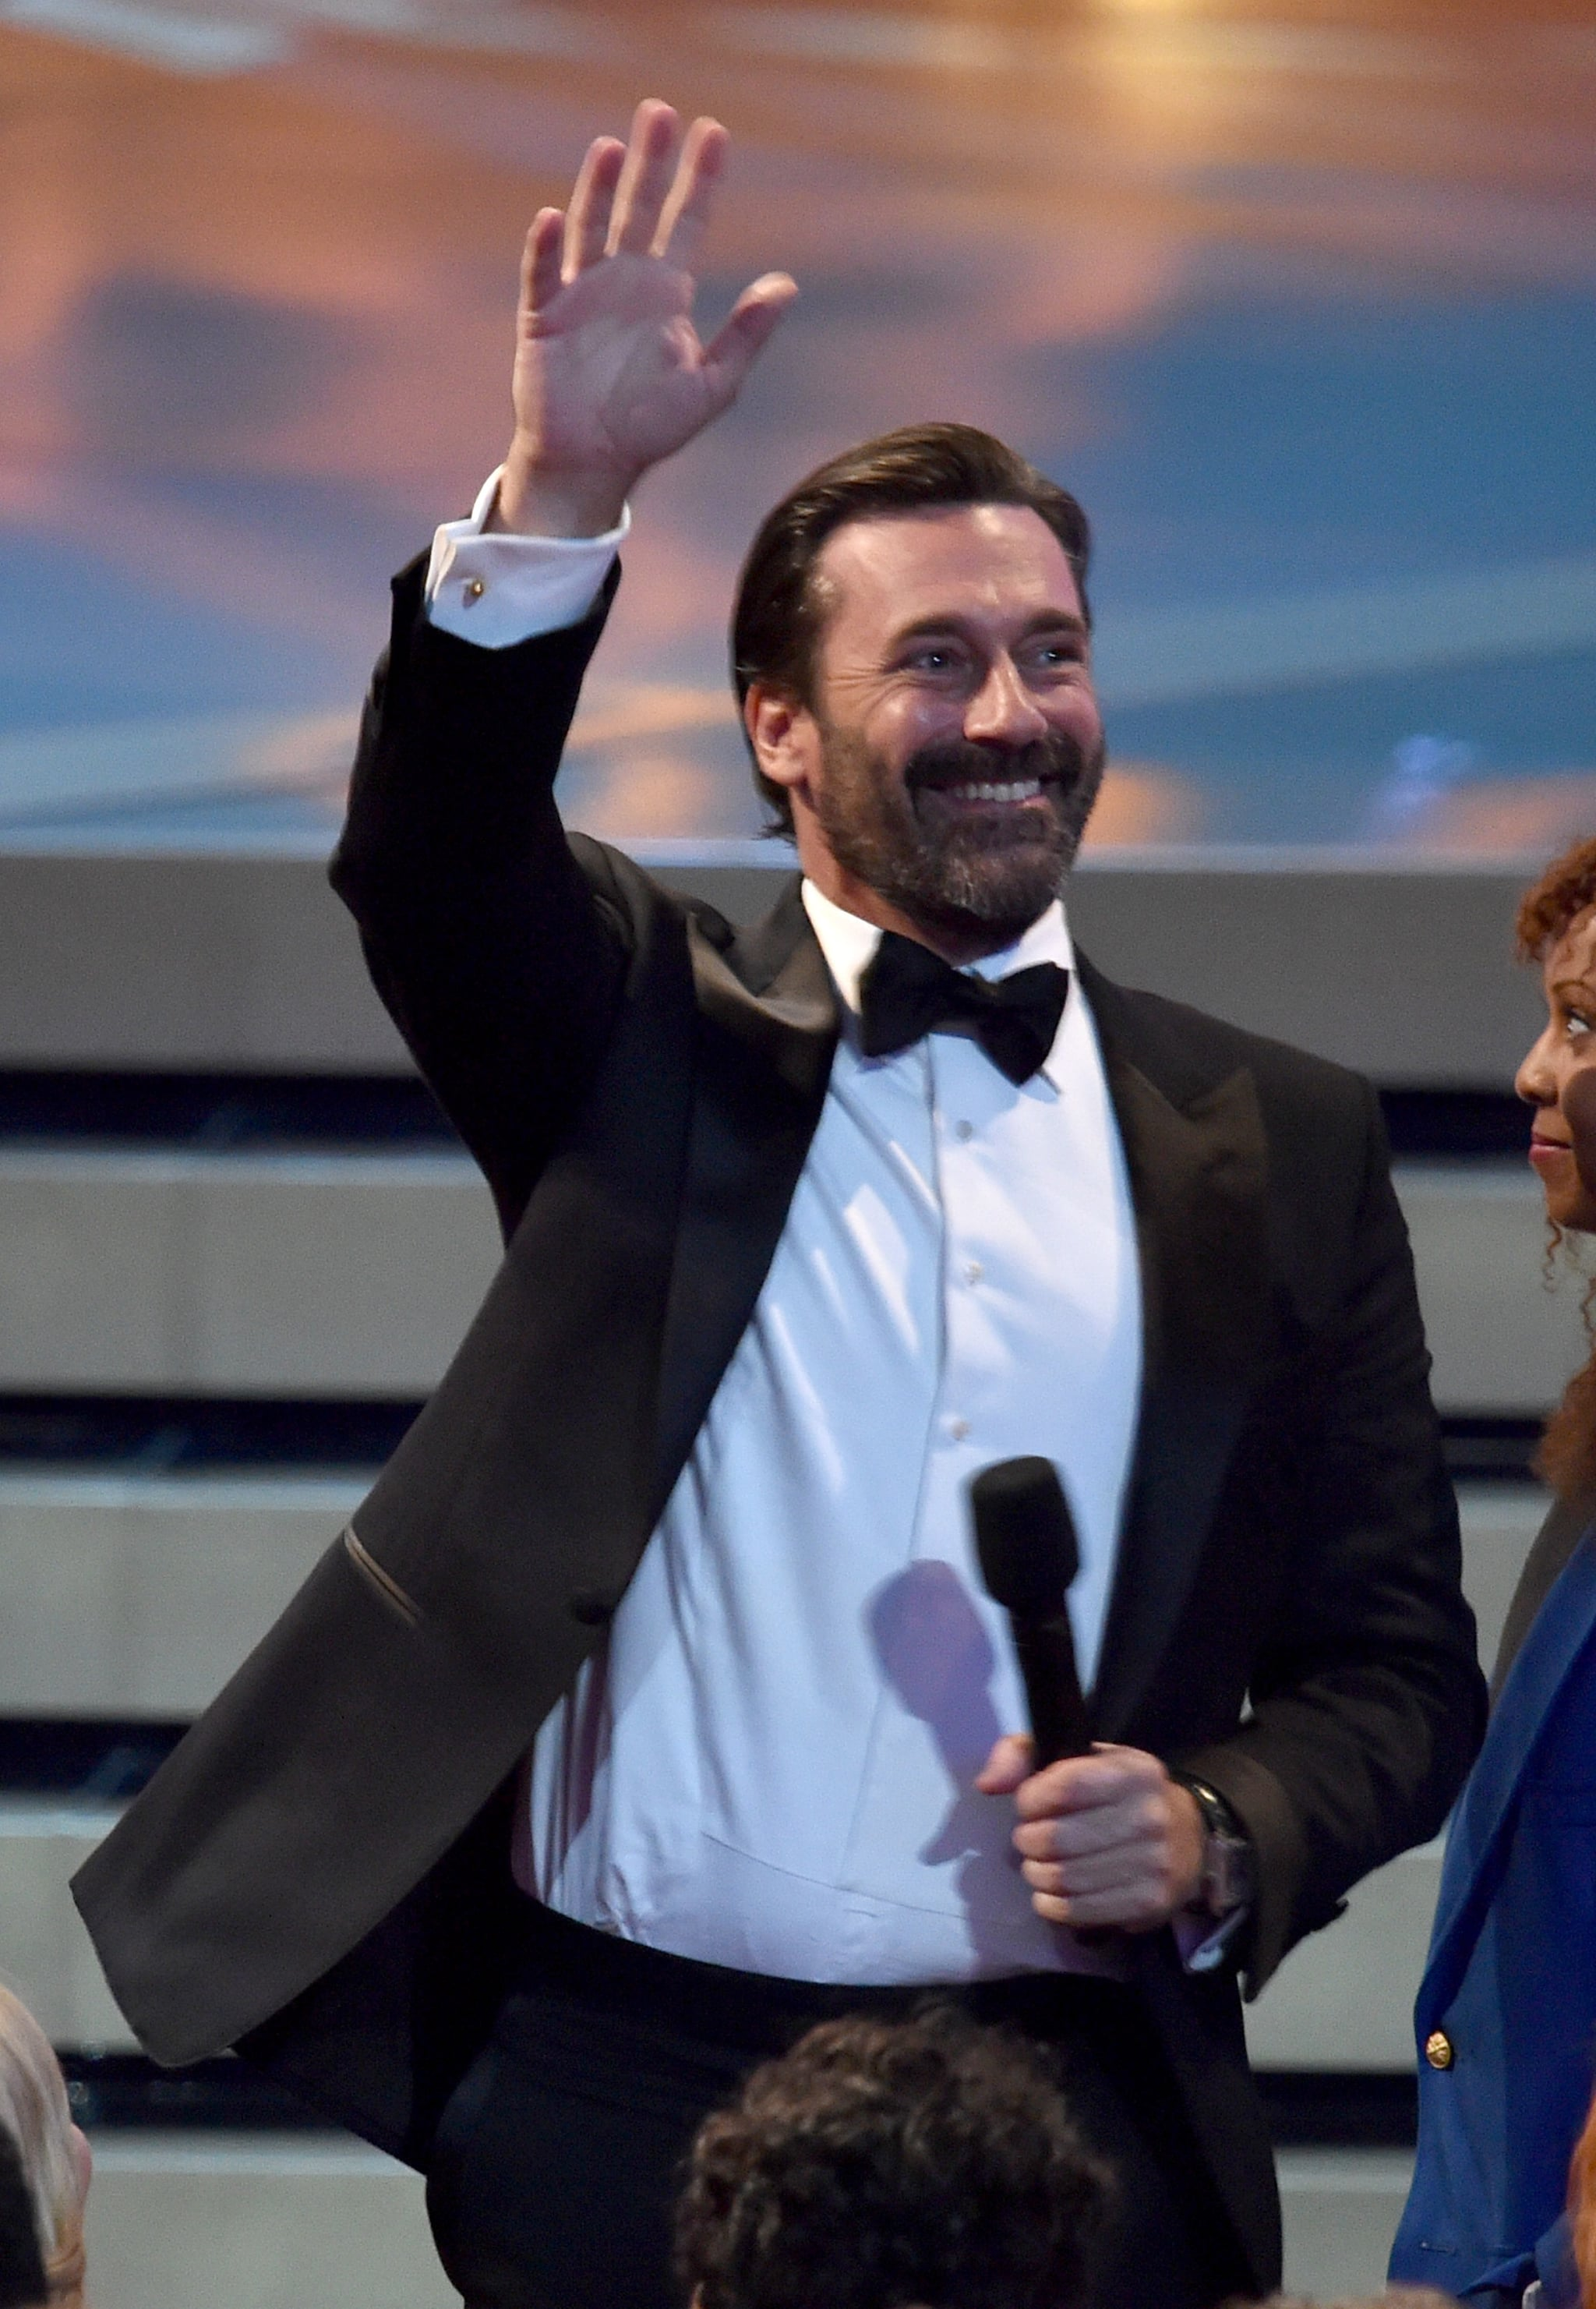 Jon Hamm waved to the audience.